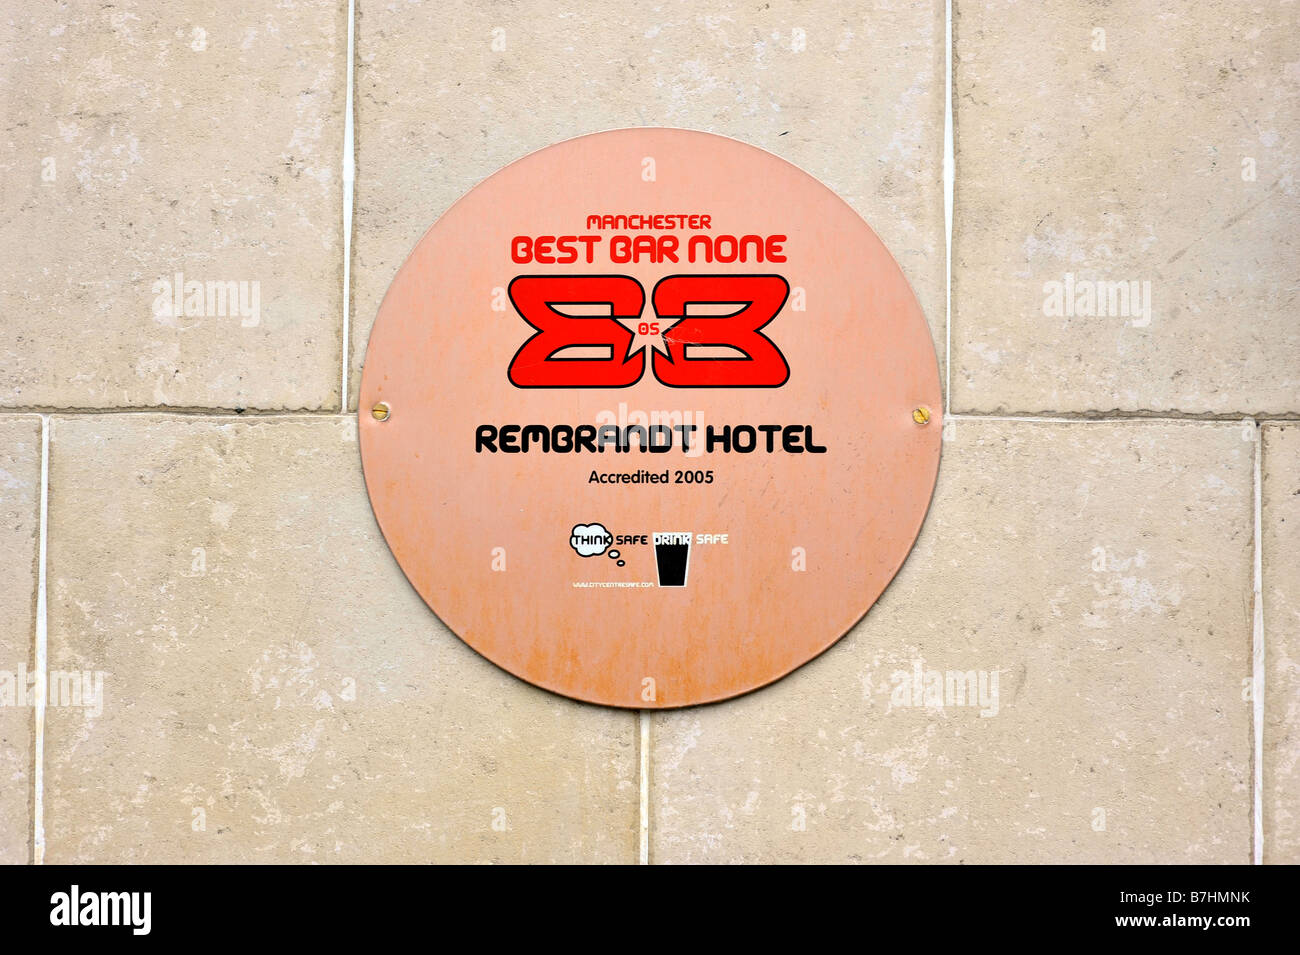 best bar none plaque rembrandt hotel canal street manchester gay village public house  entertainment award travel - Stock Image